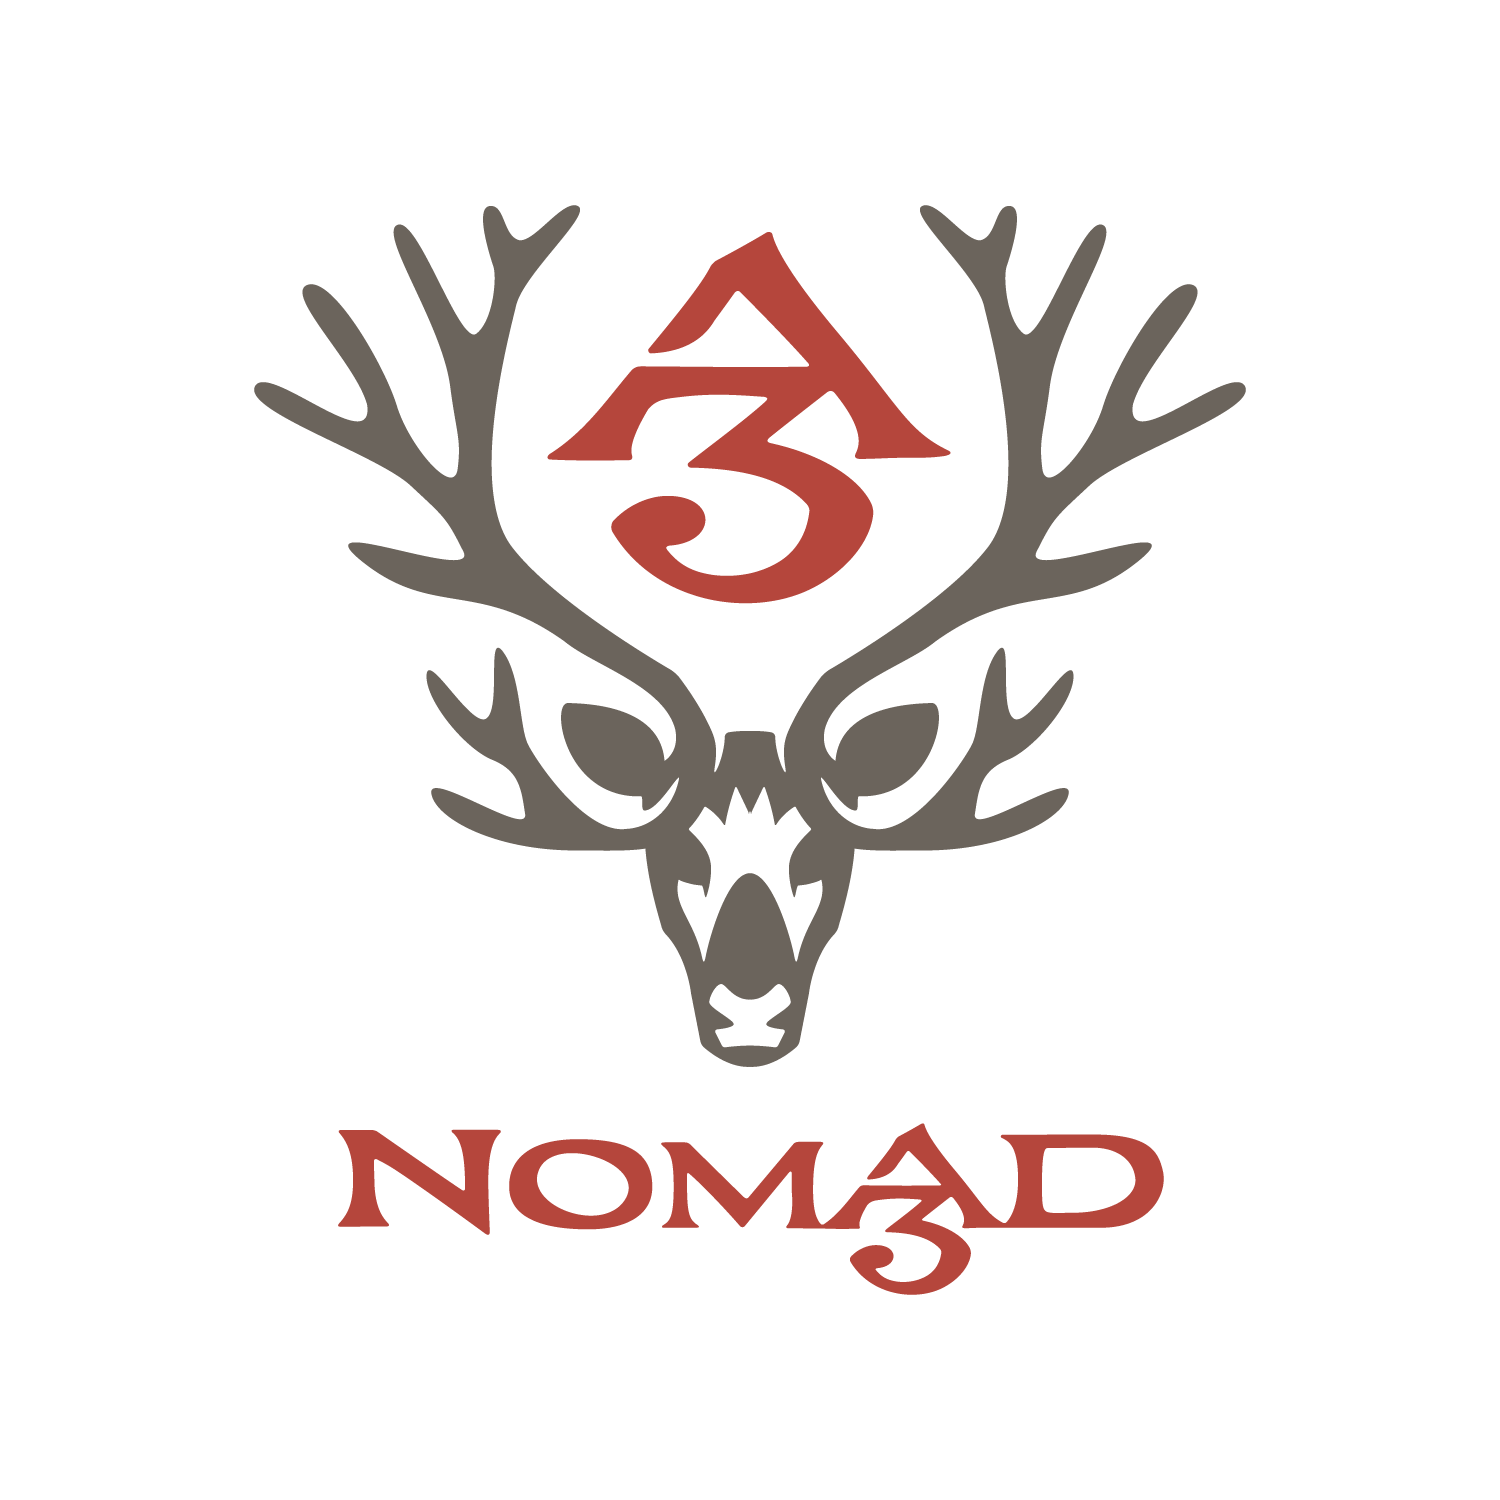 NOMAD / A-3